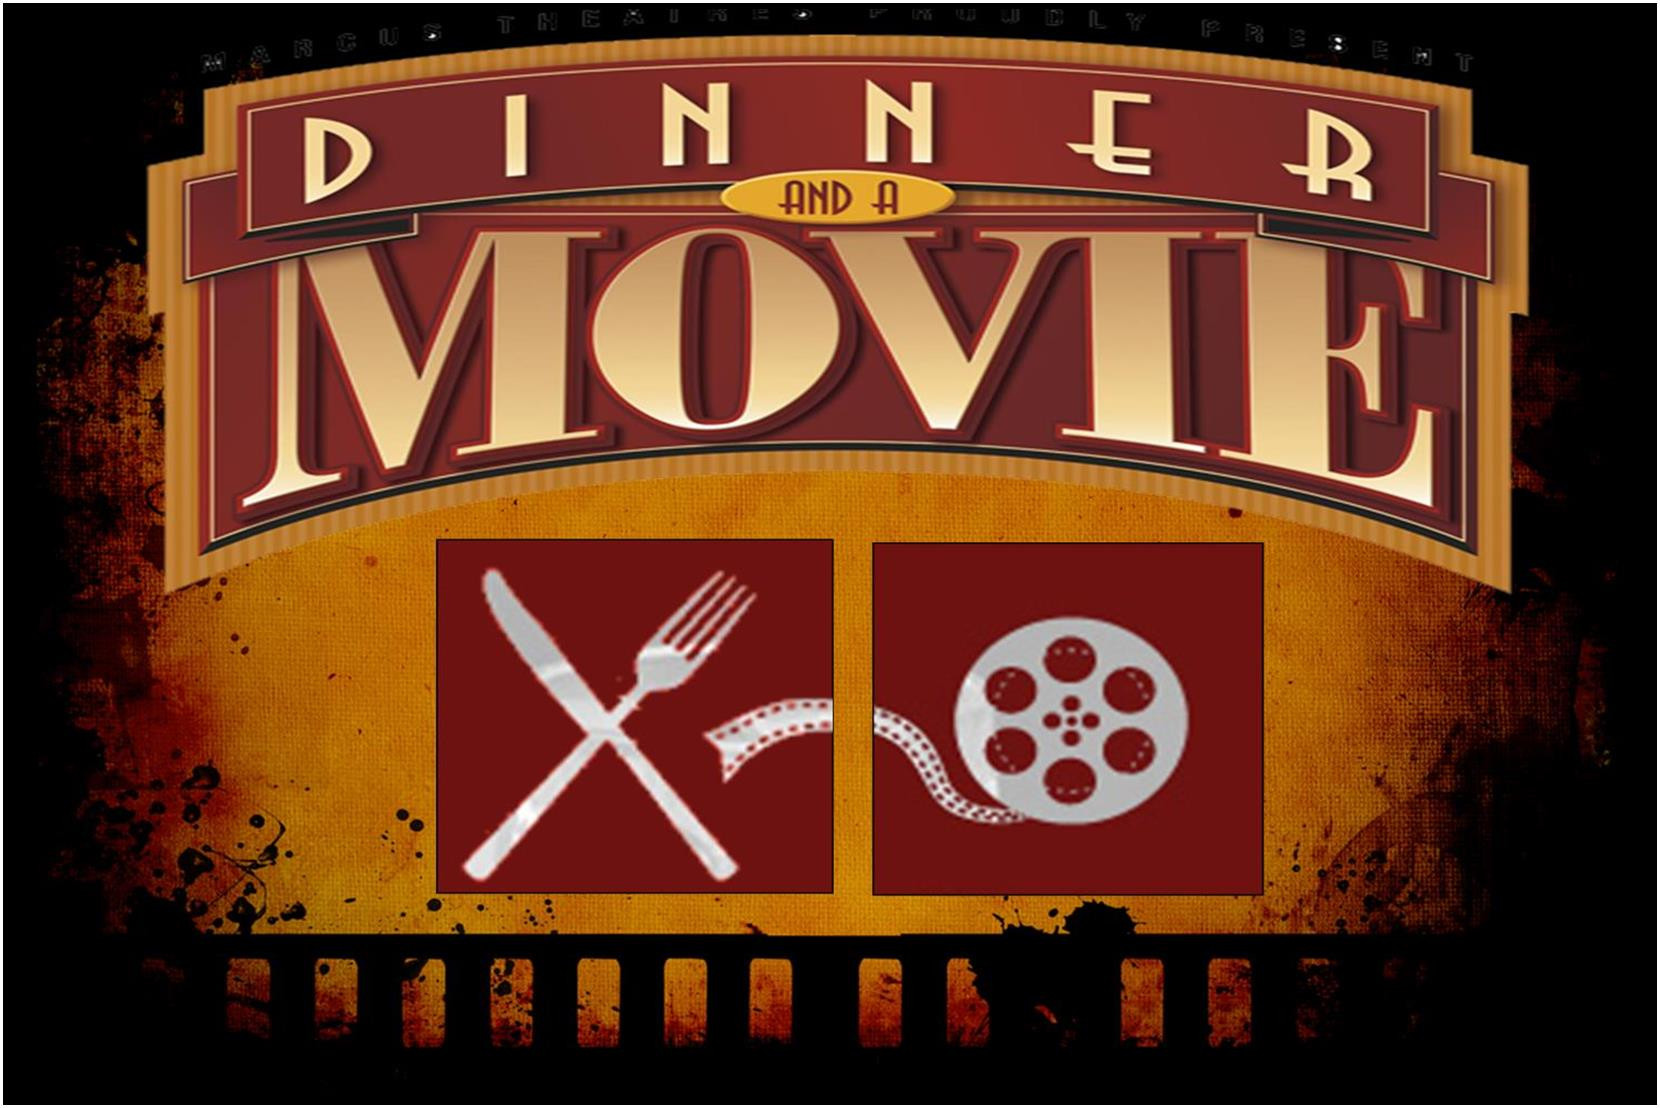 Dinner And A Movie  WIN Dinner & a Movie from KLAZ